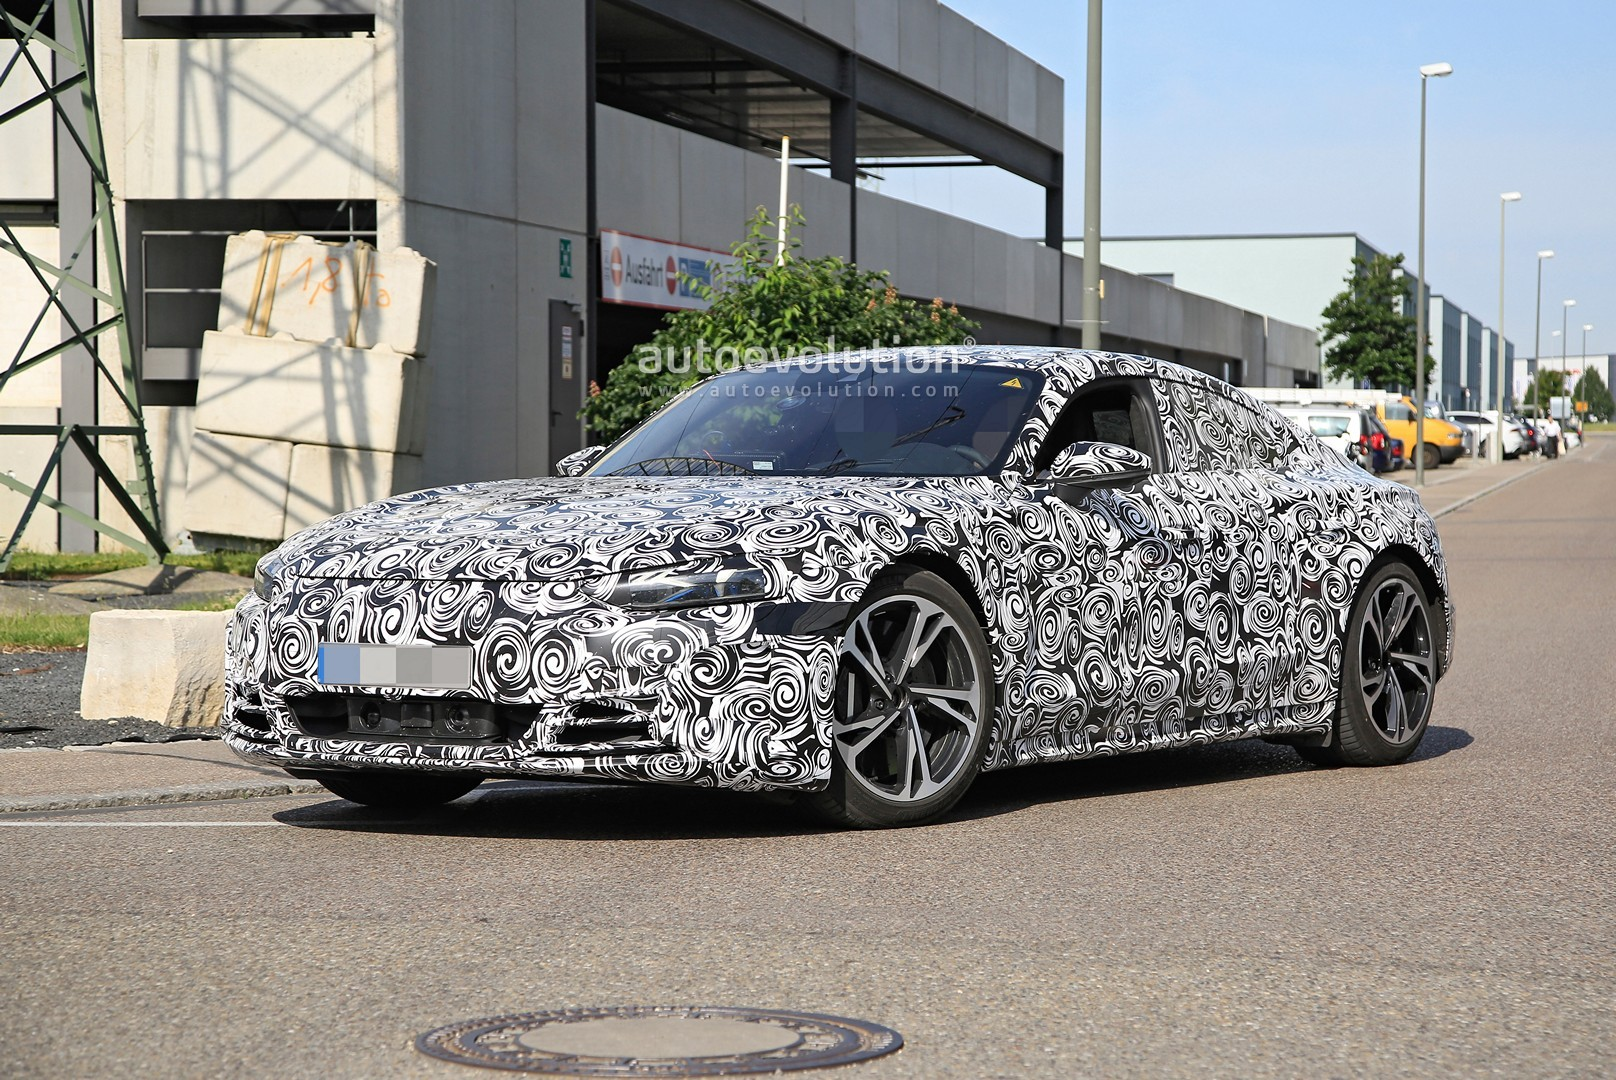 2021-audi-​e-tron-gt-​spotted-10​0000-ev-ge​tting-read​y-for-prod​uction_3